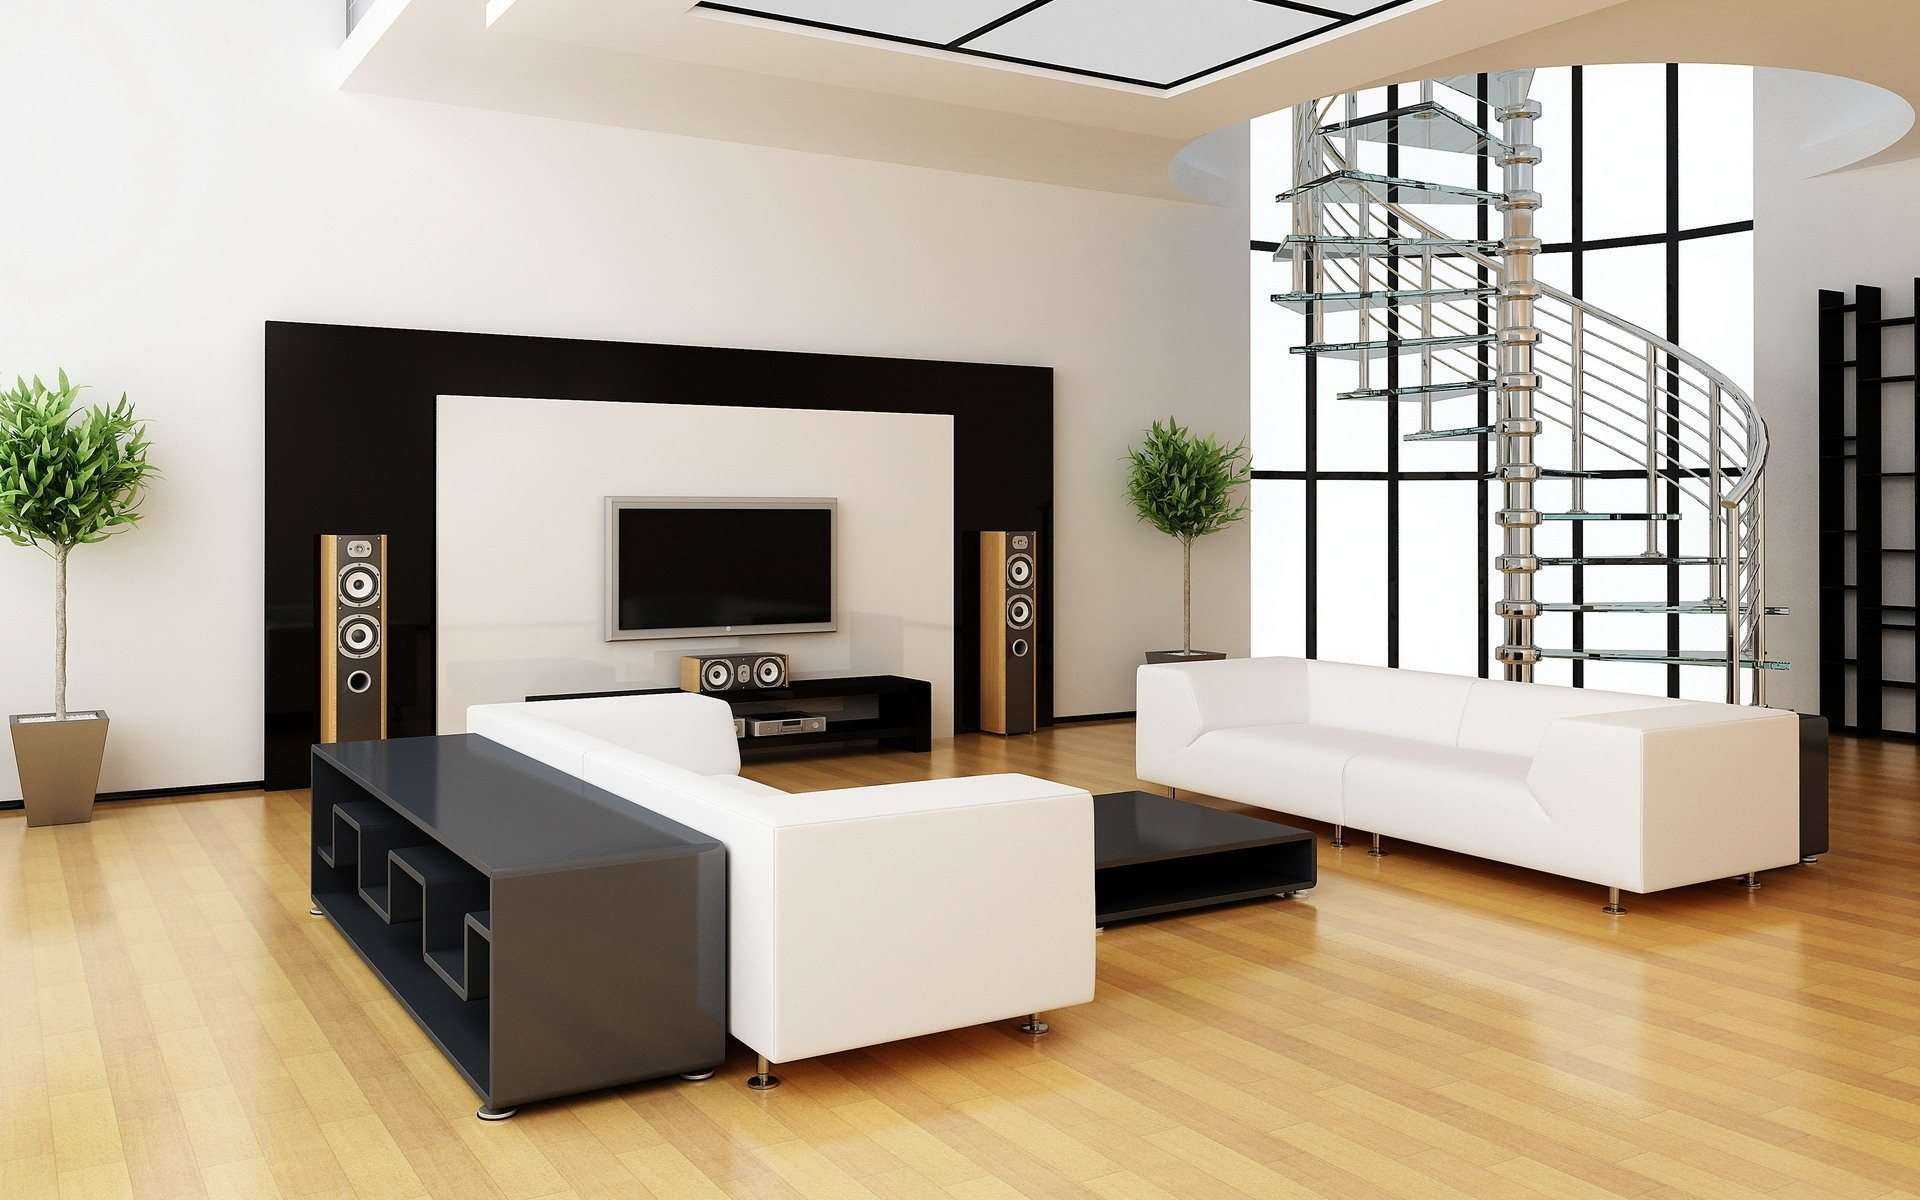 Beautiful Home Wallpapers For Free Download Hd Interior Contemporary Minimalist Living Room 1920x1200 Download Hd Wallpaper Wallpapertip